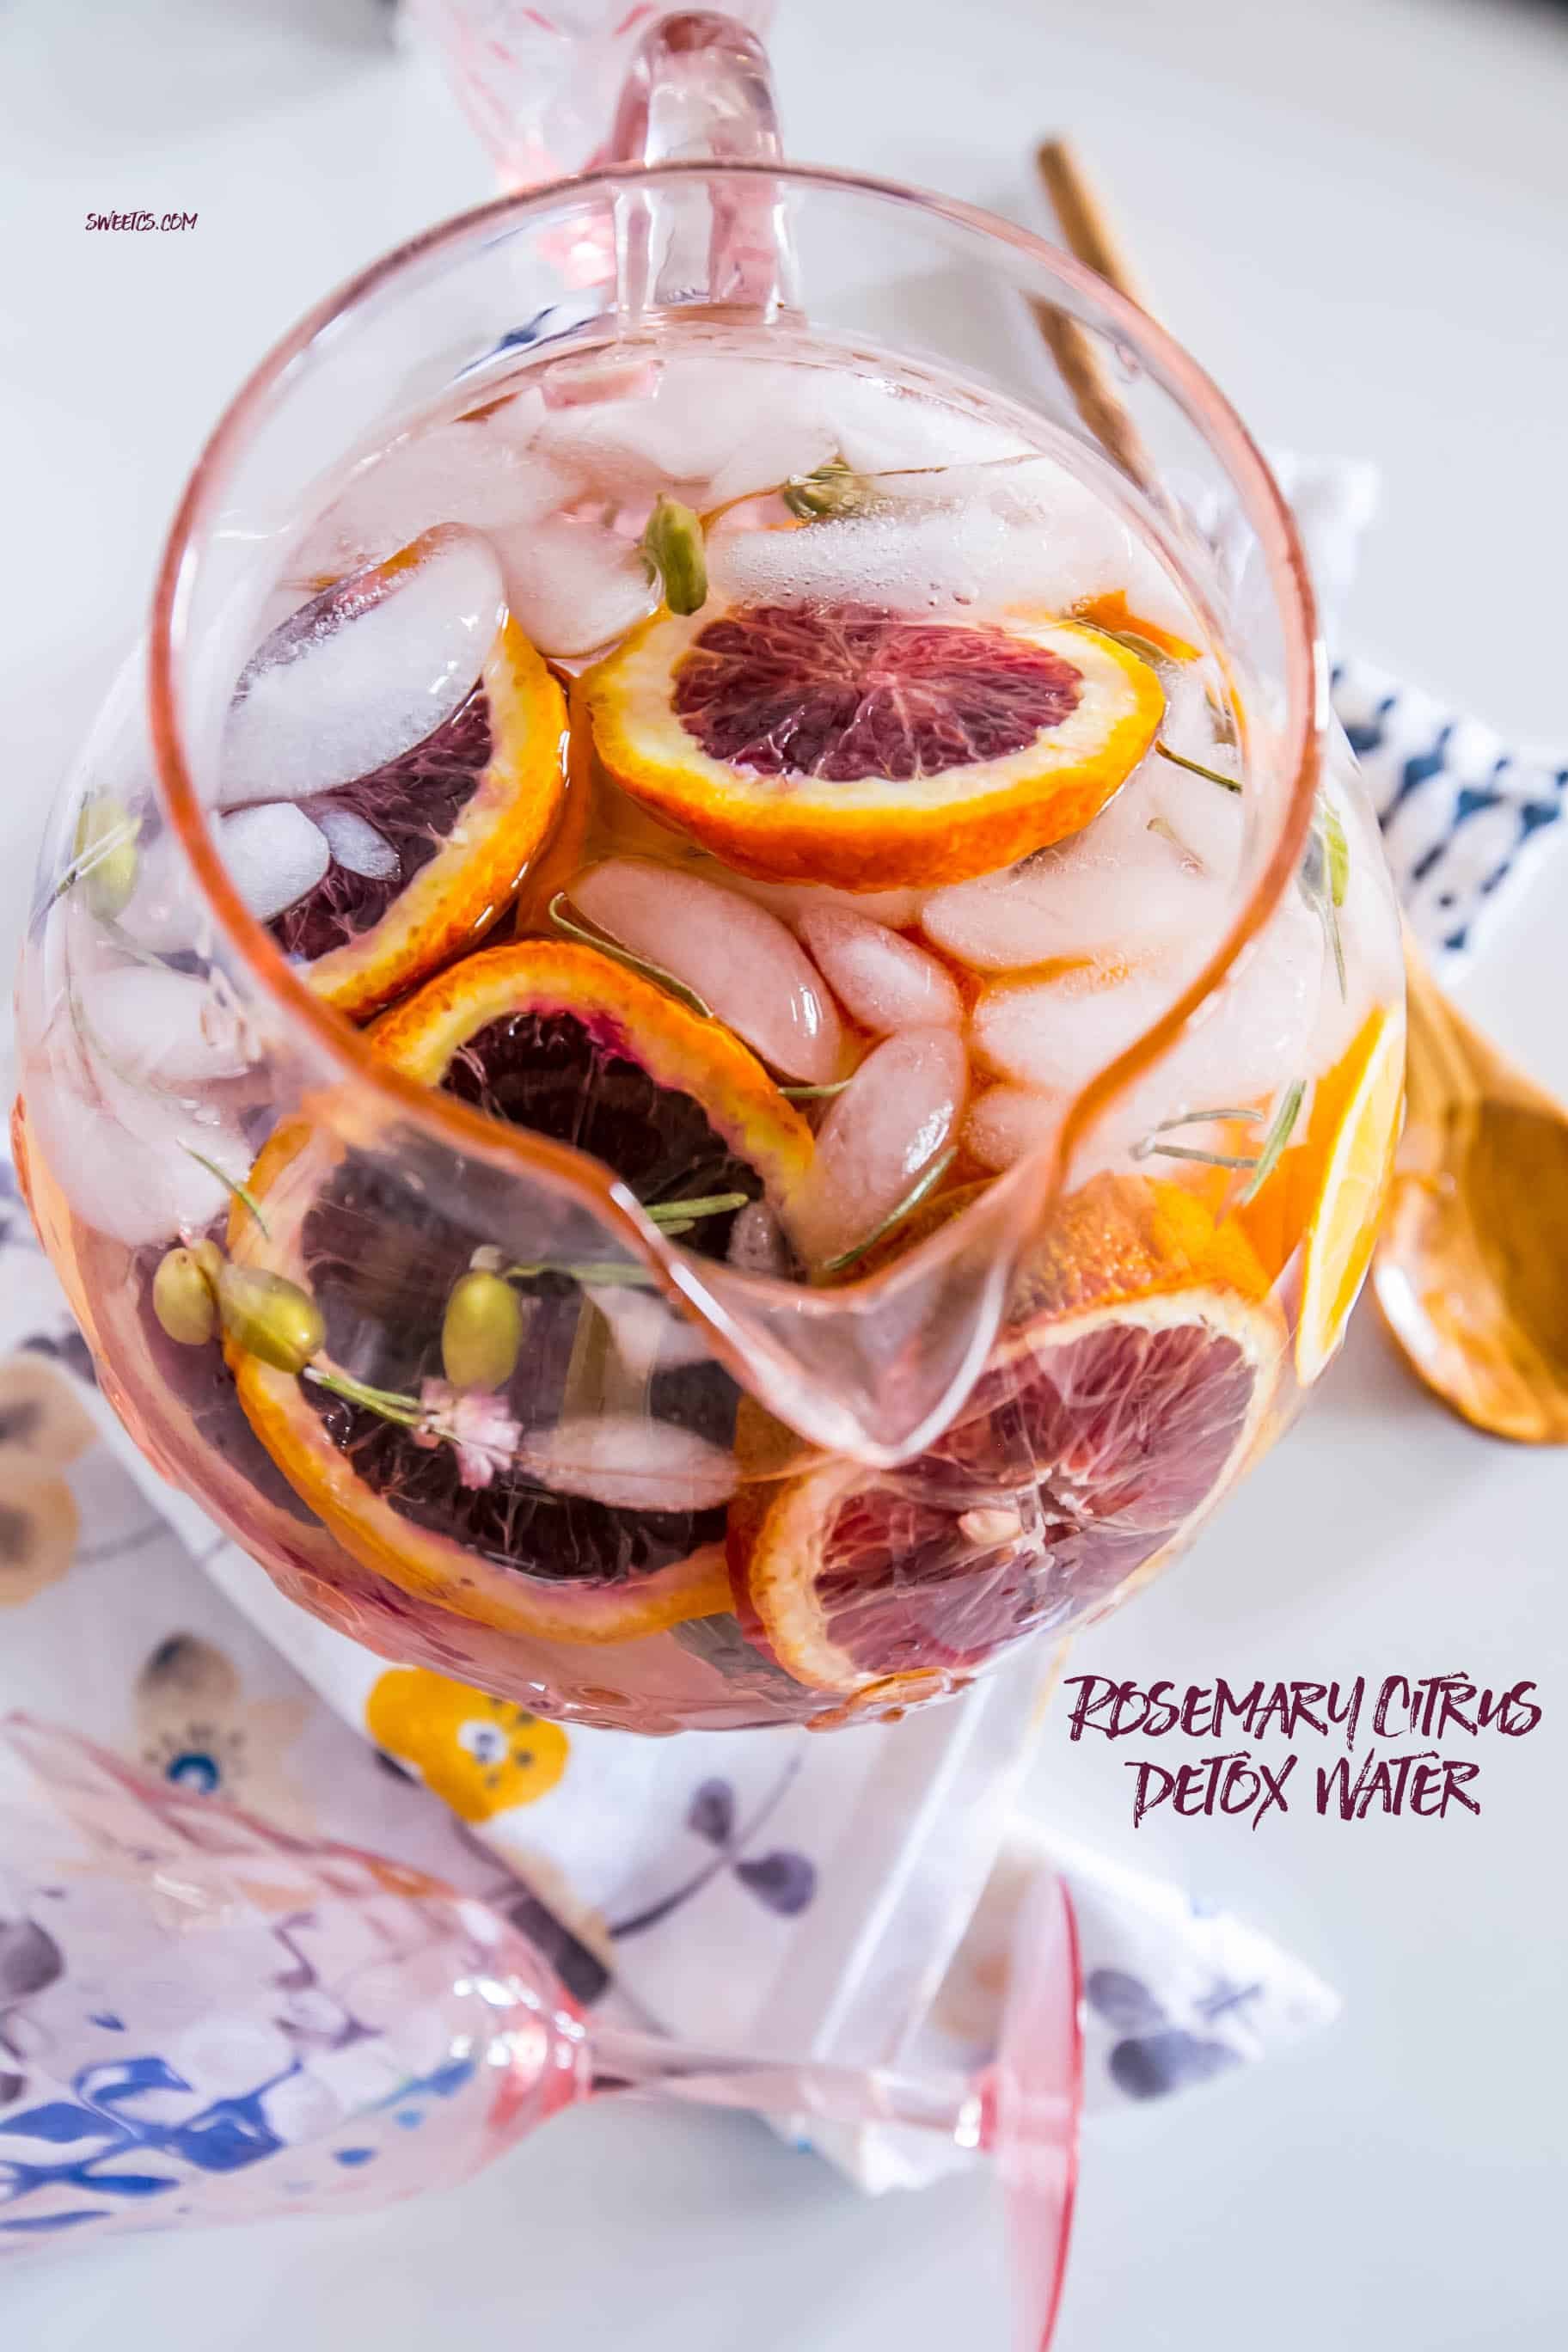 Rosemary citrus detox water- this is so delicious and refreshing!